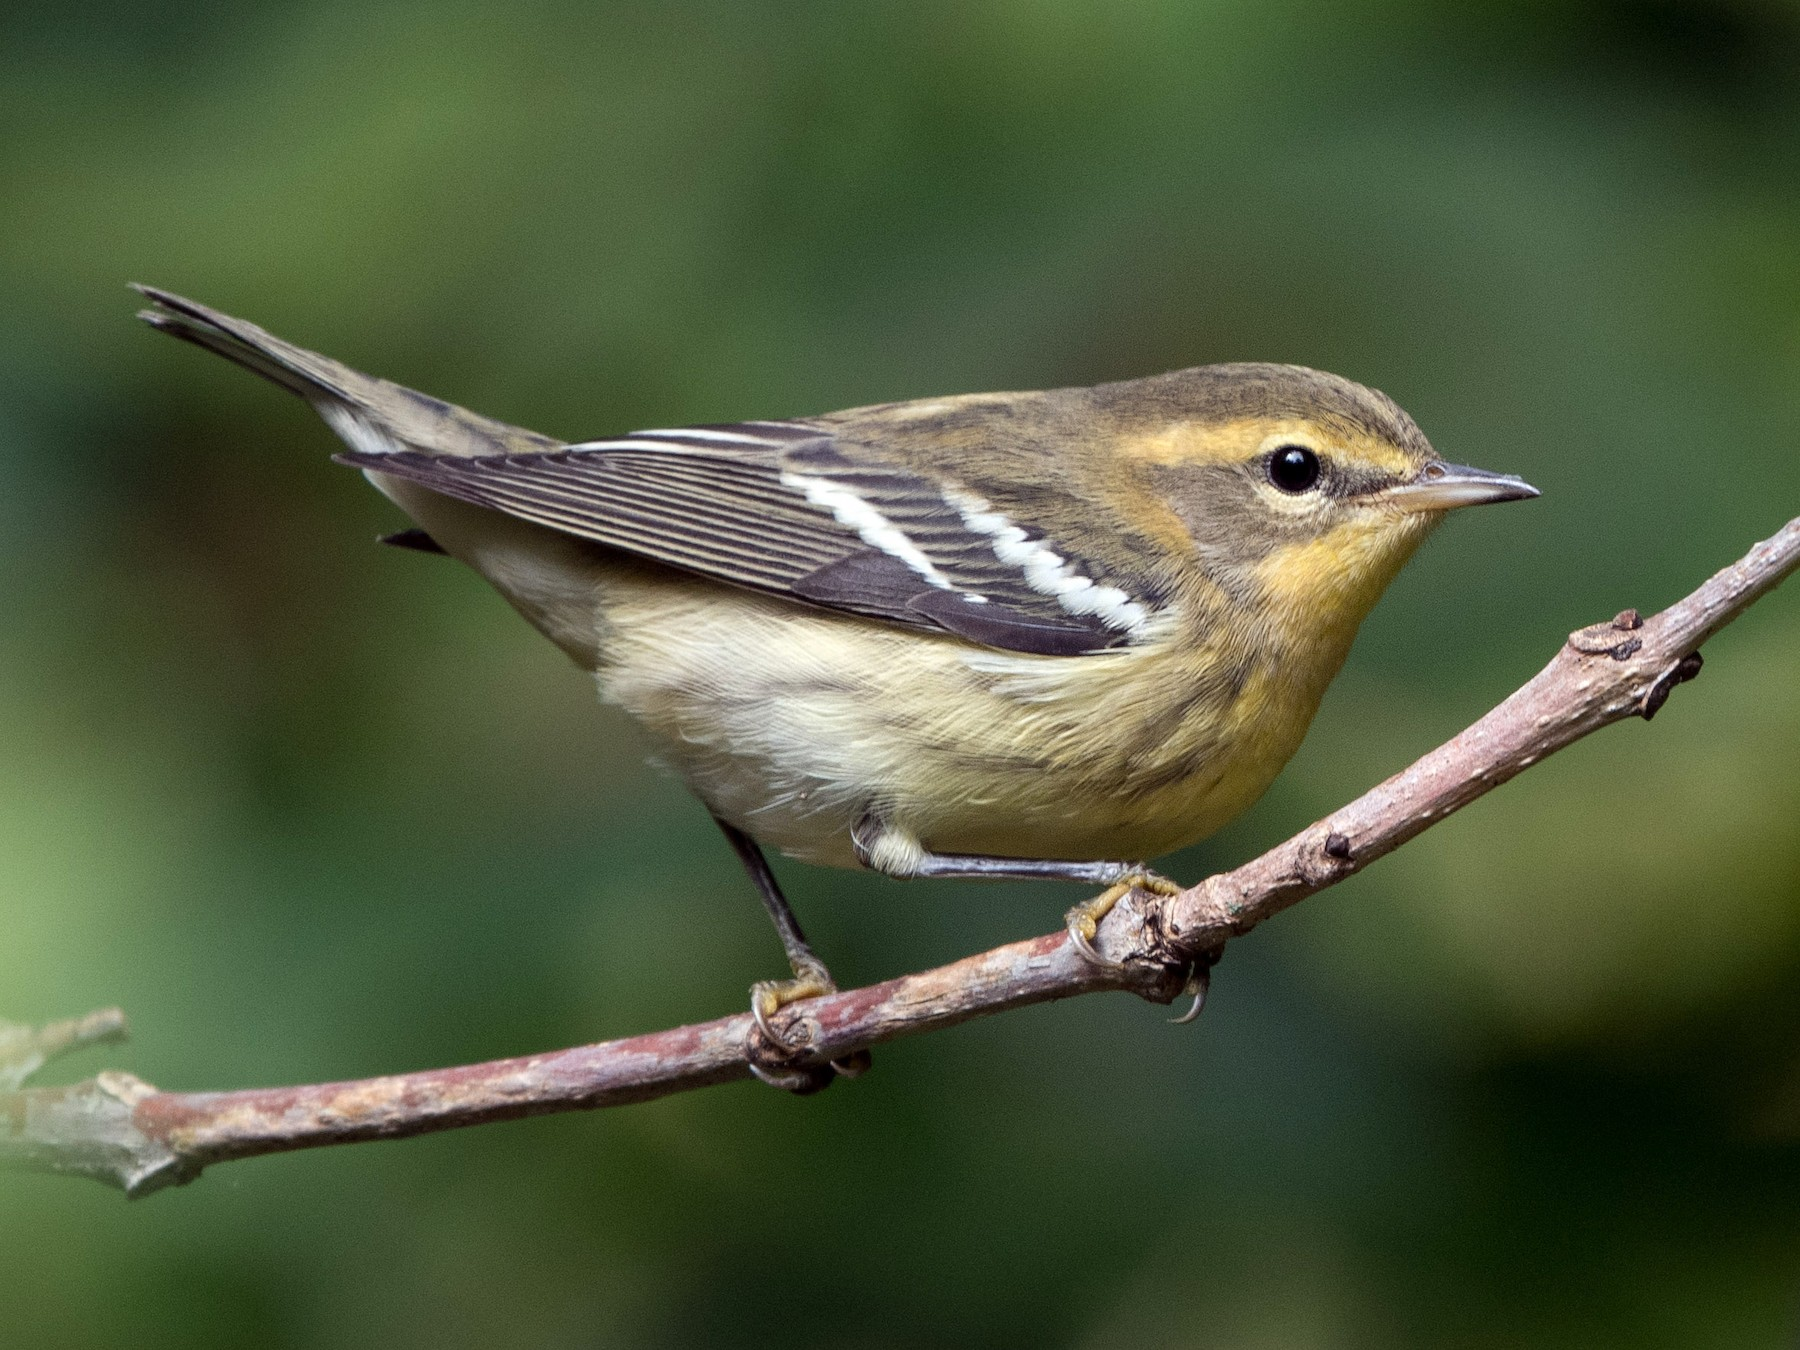 Blackburnian Warbler - William Higgins